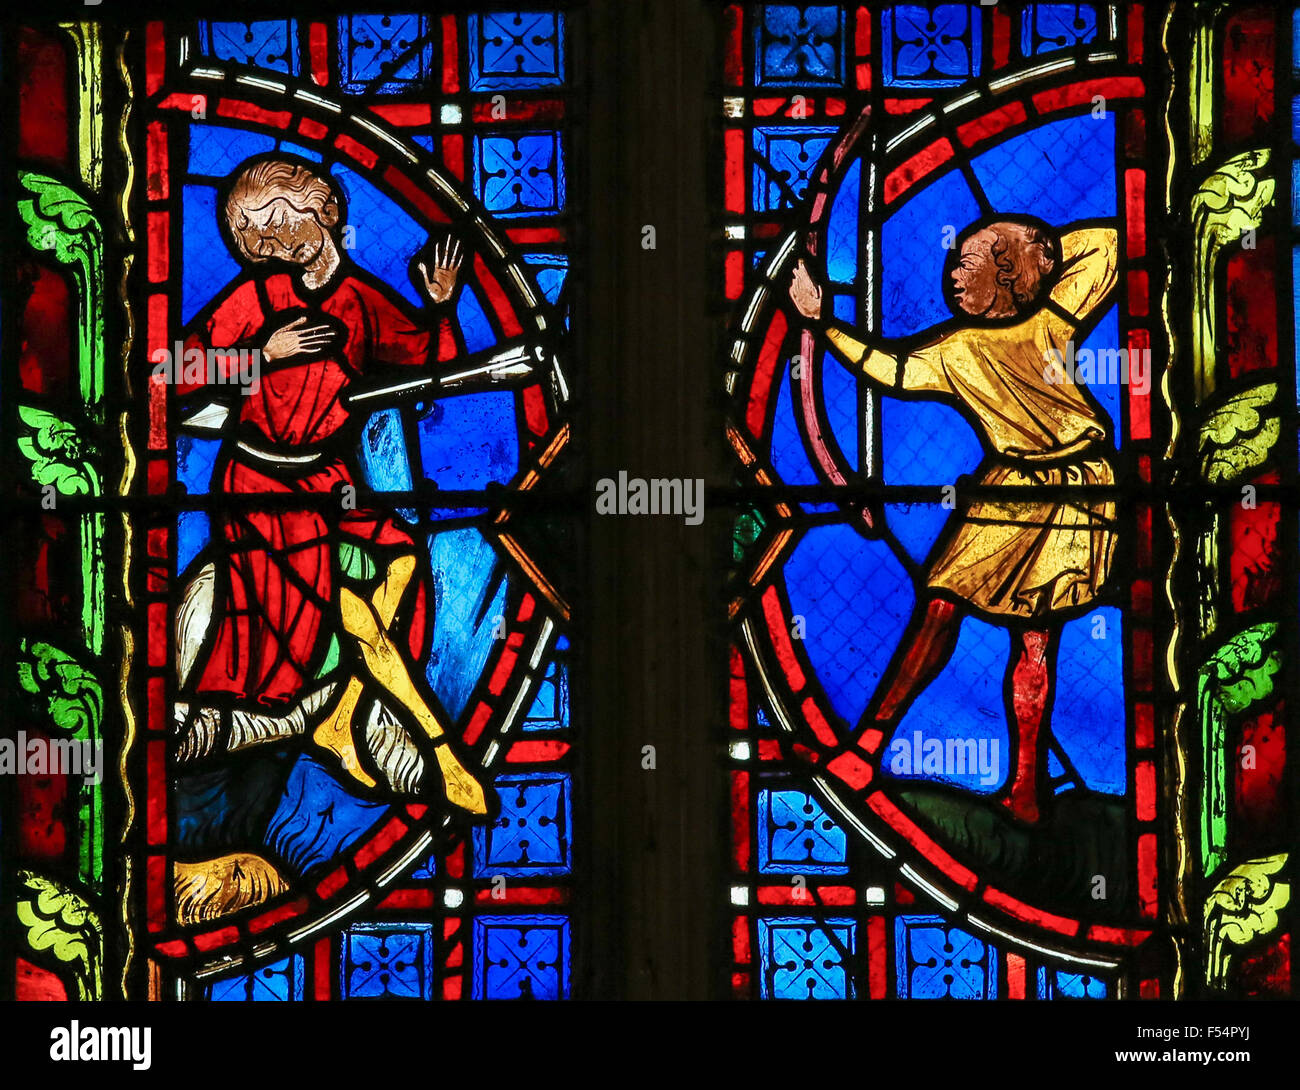 Stained glass window depicting a Saint killed by an arrow in the Cathedral of Tours, France. - Stock Image